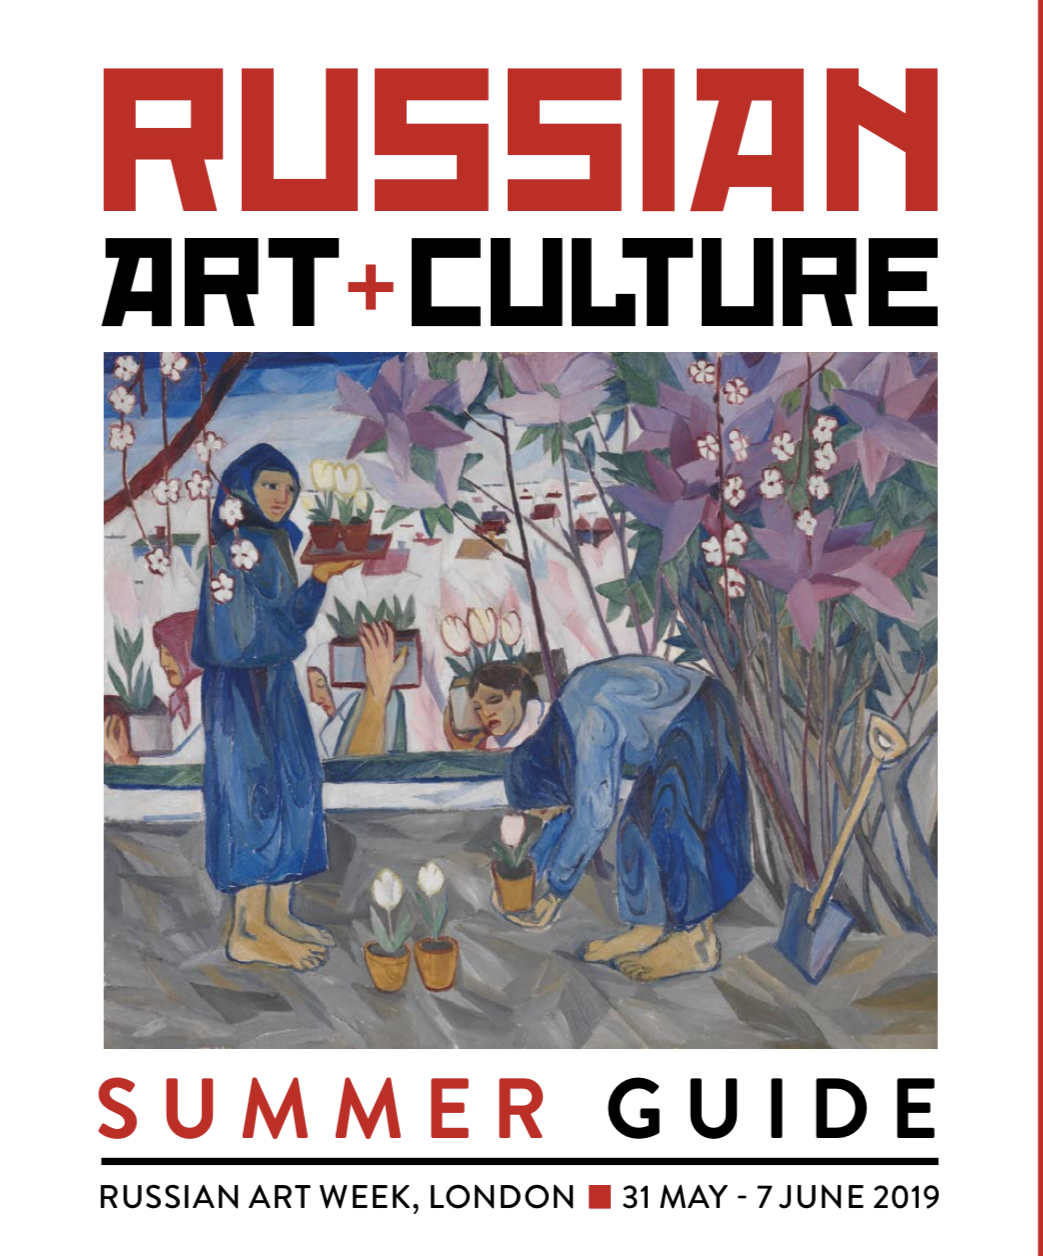 Russian Art and Culture Summer Guide 2019 Cover.jpg